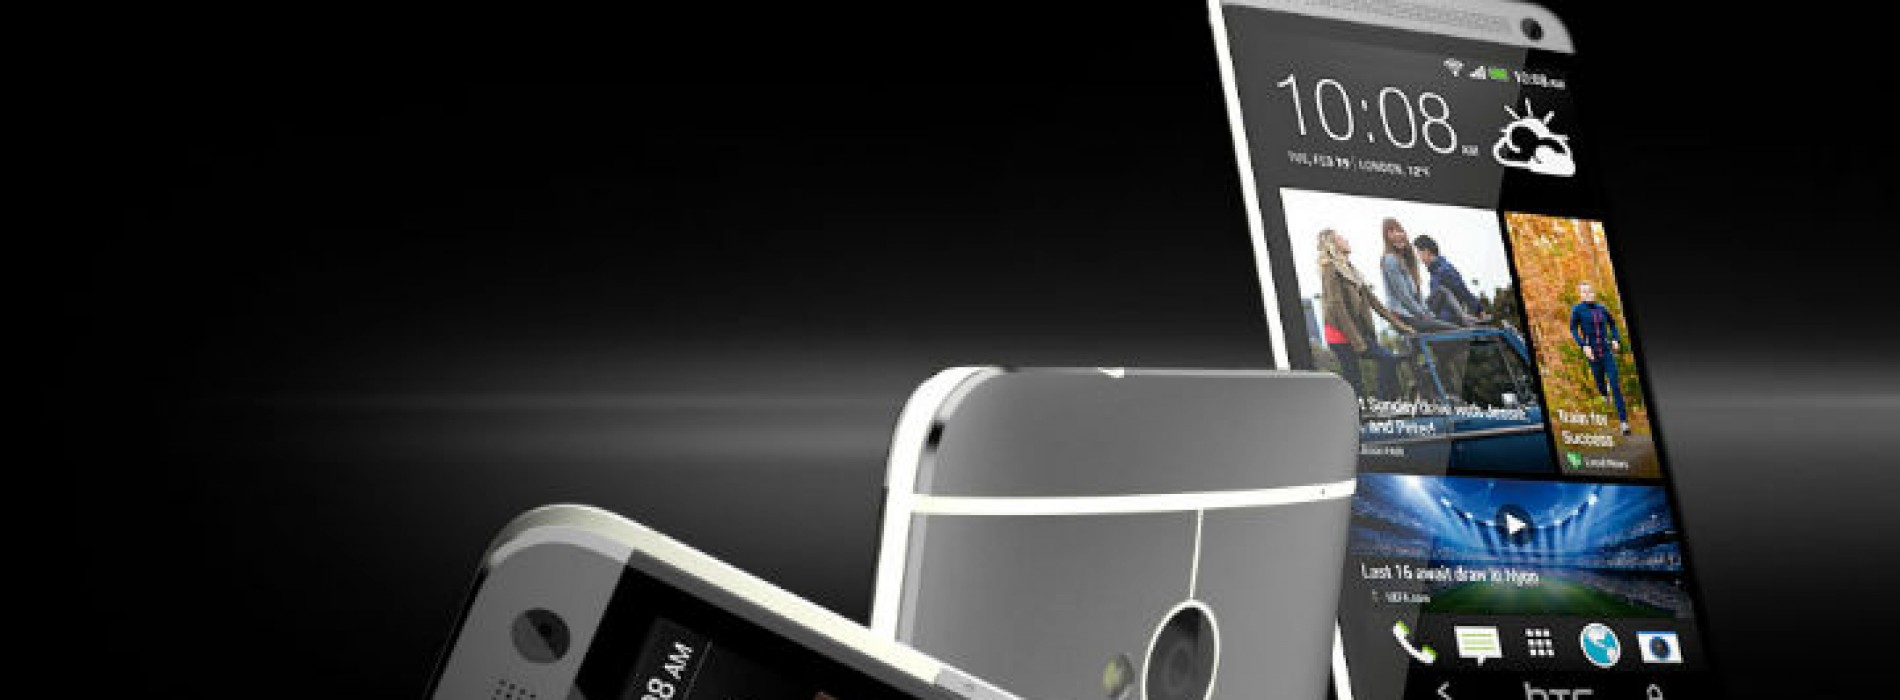 When will Verizon launch HTC One?